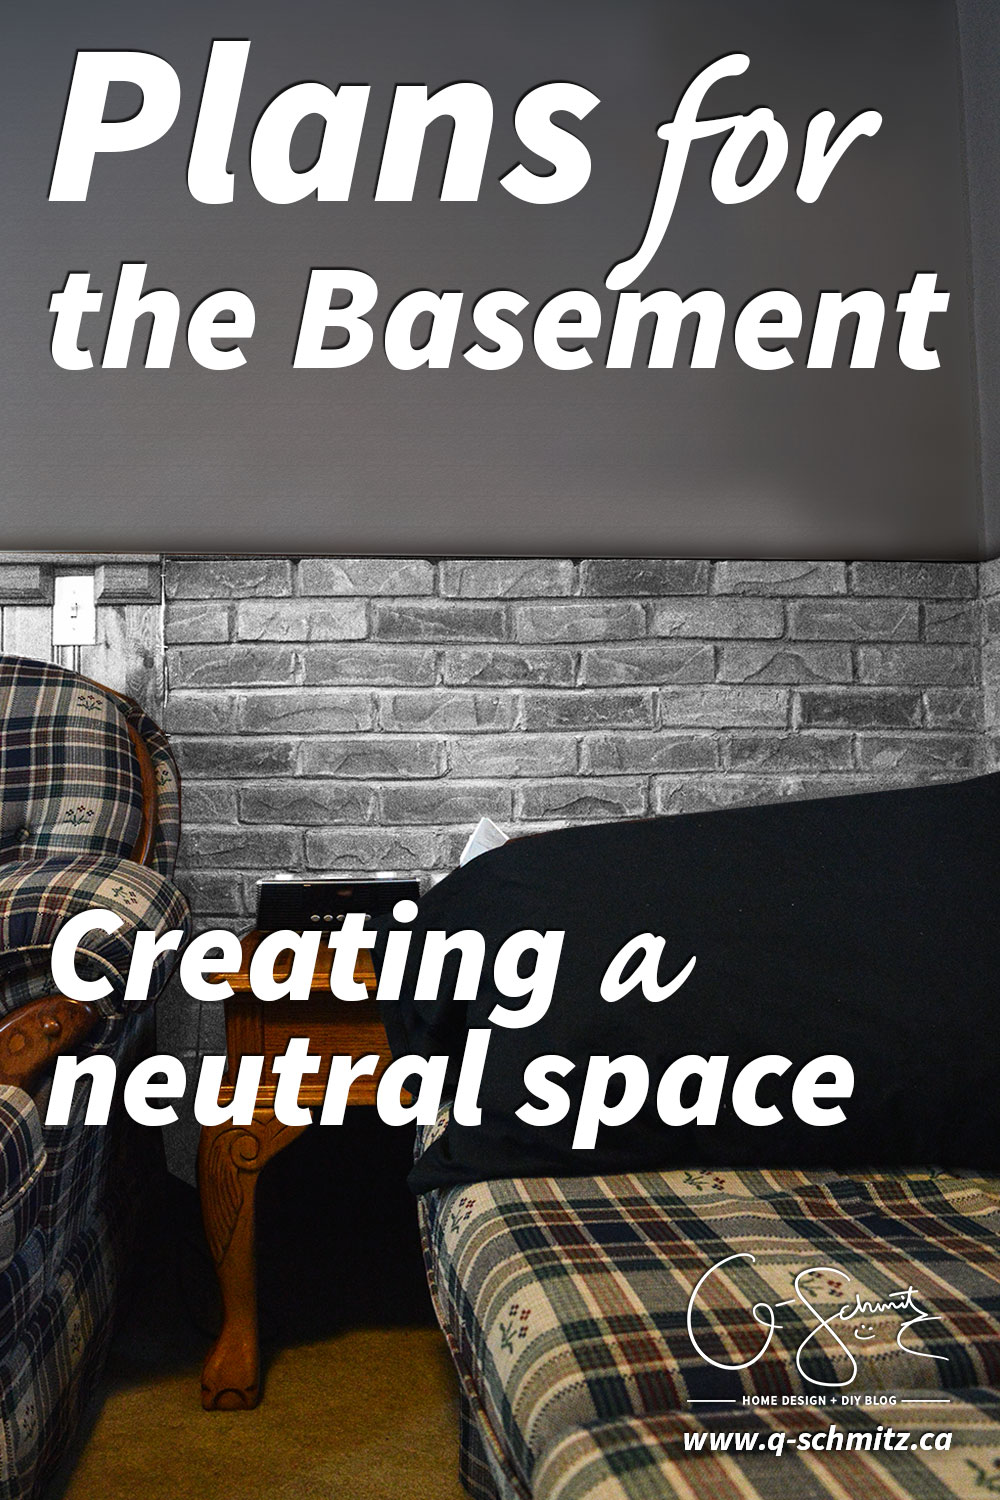 Whether you are doing any renovations or decorating, it's always best to have a plan in place ahead of time. Check out my future plans for the basement!